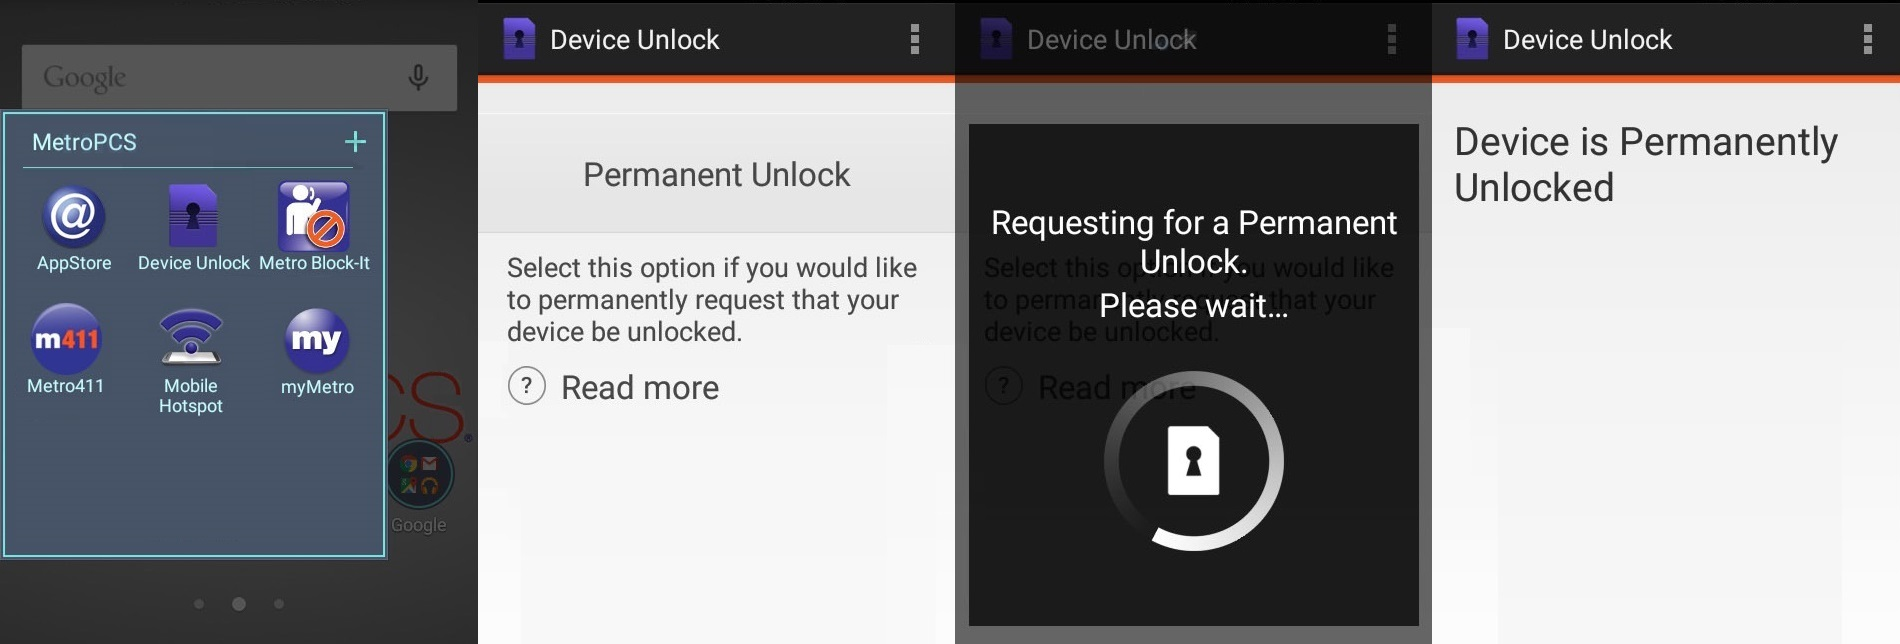 Device Unlock is an Android app that allows you to request and apply a MetroPCS mobile device unlock directly from the device